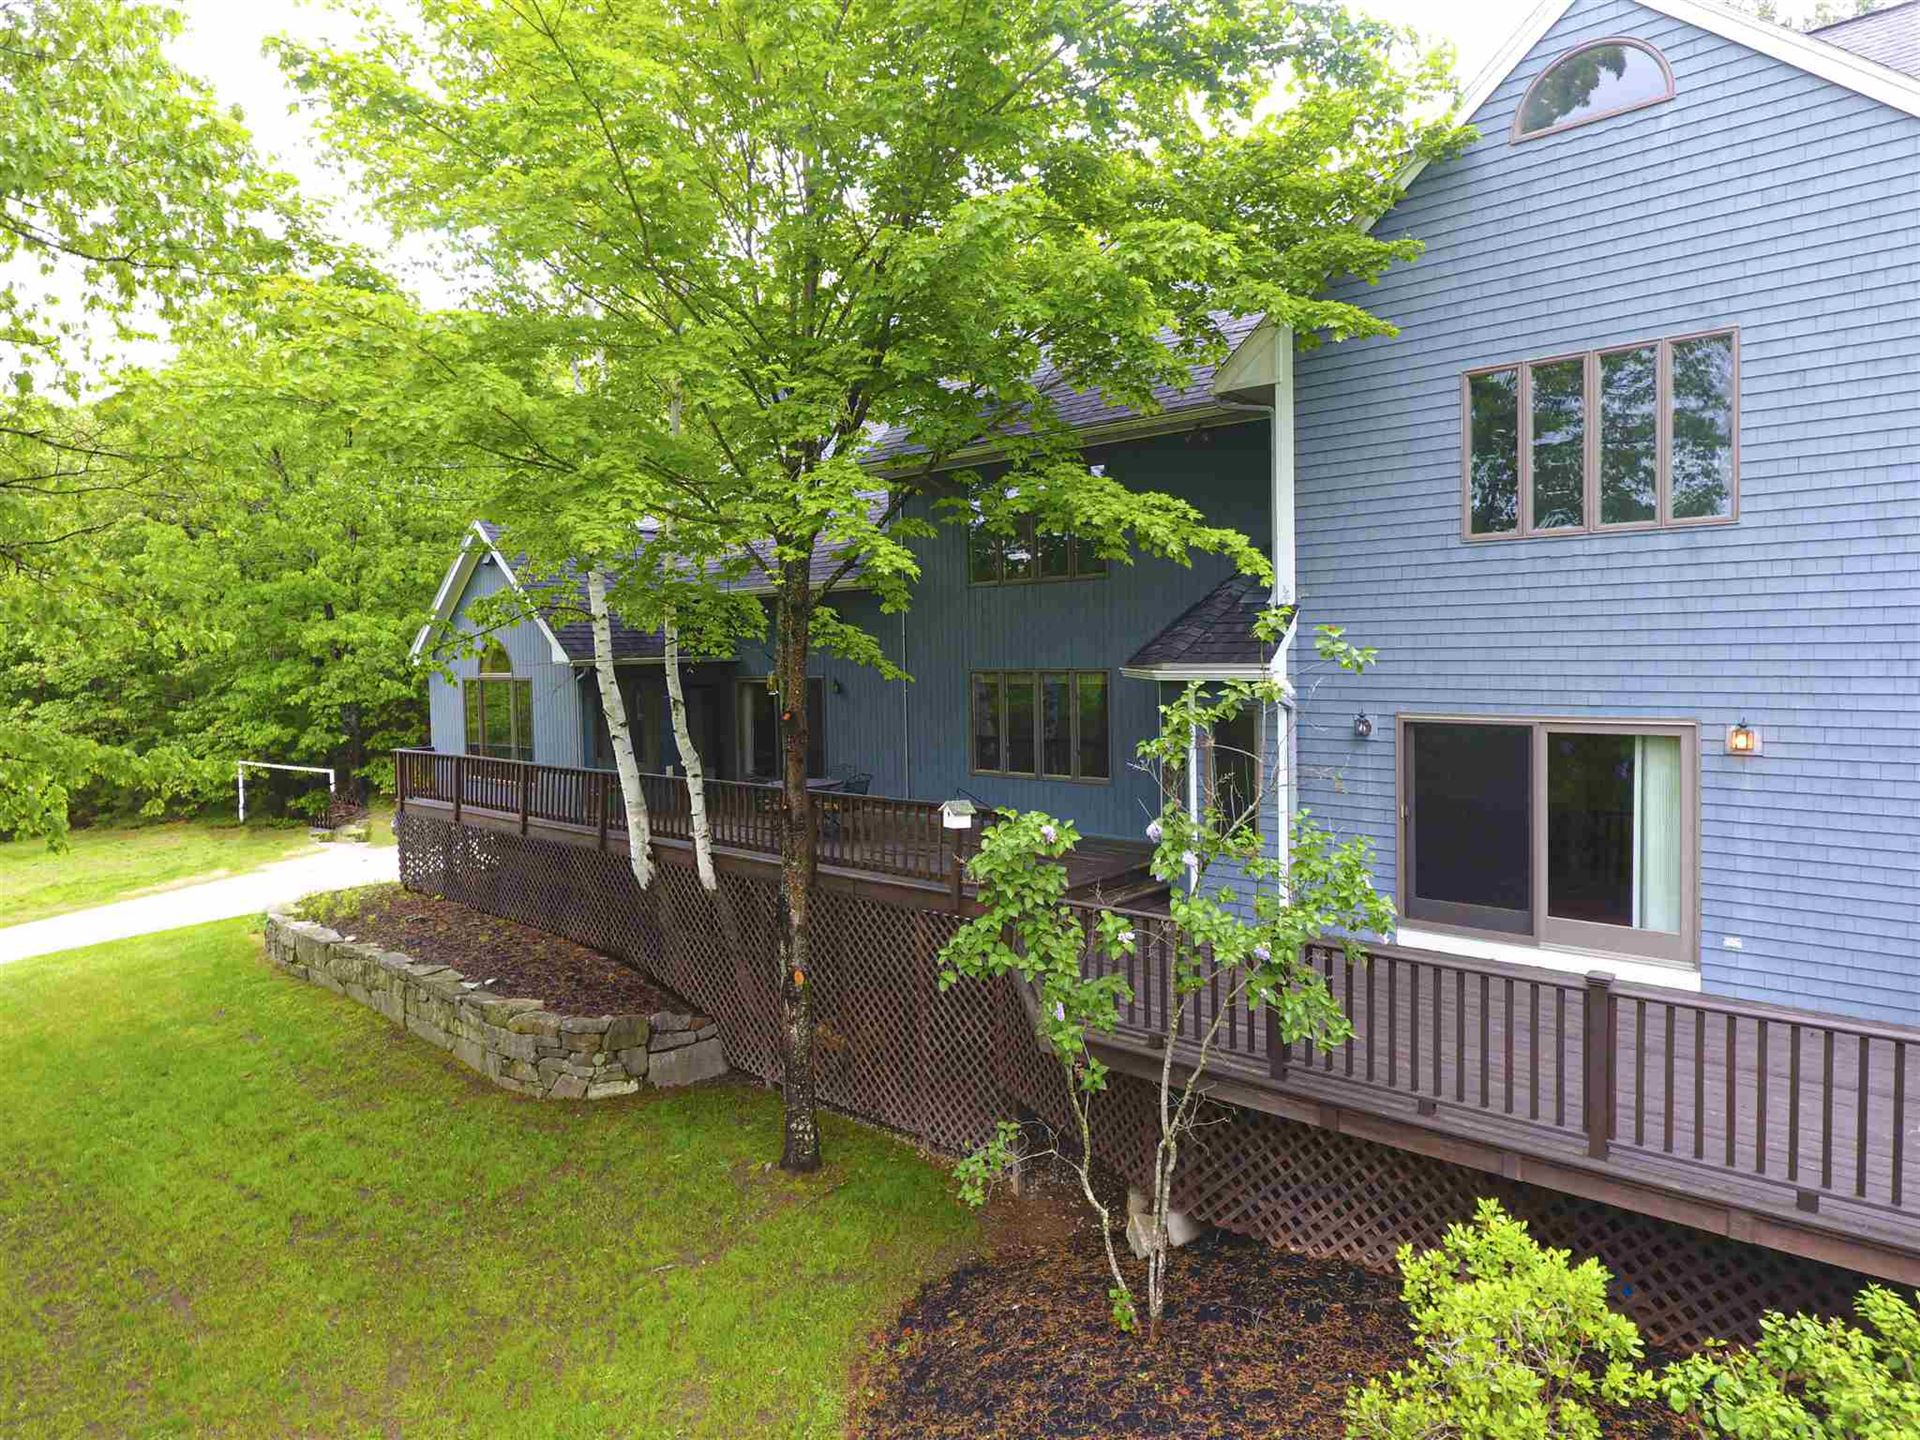 12 Federal Hill Road, Hollis, NH 03049 - #: 4811143